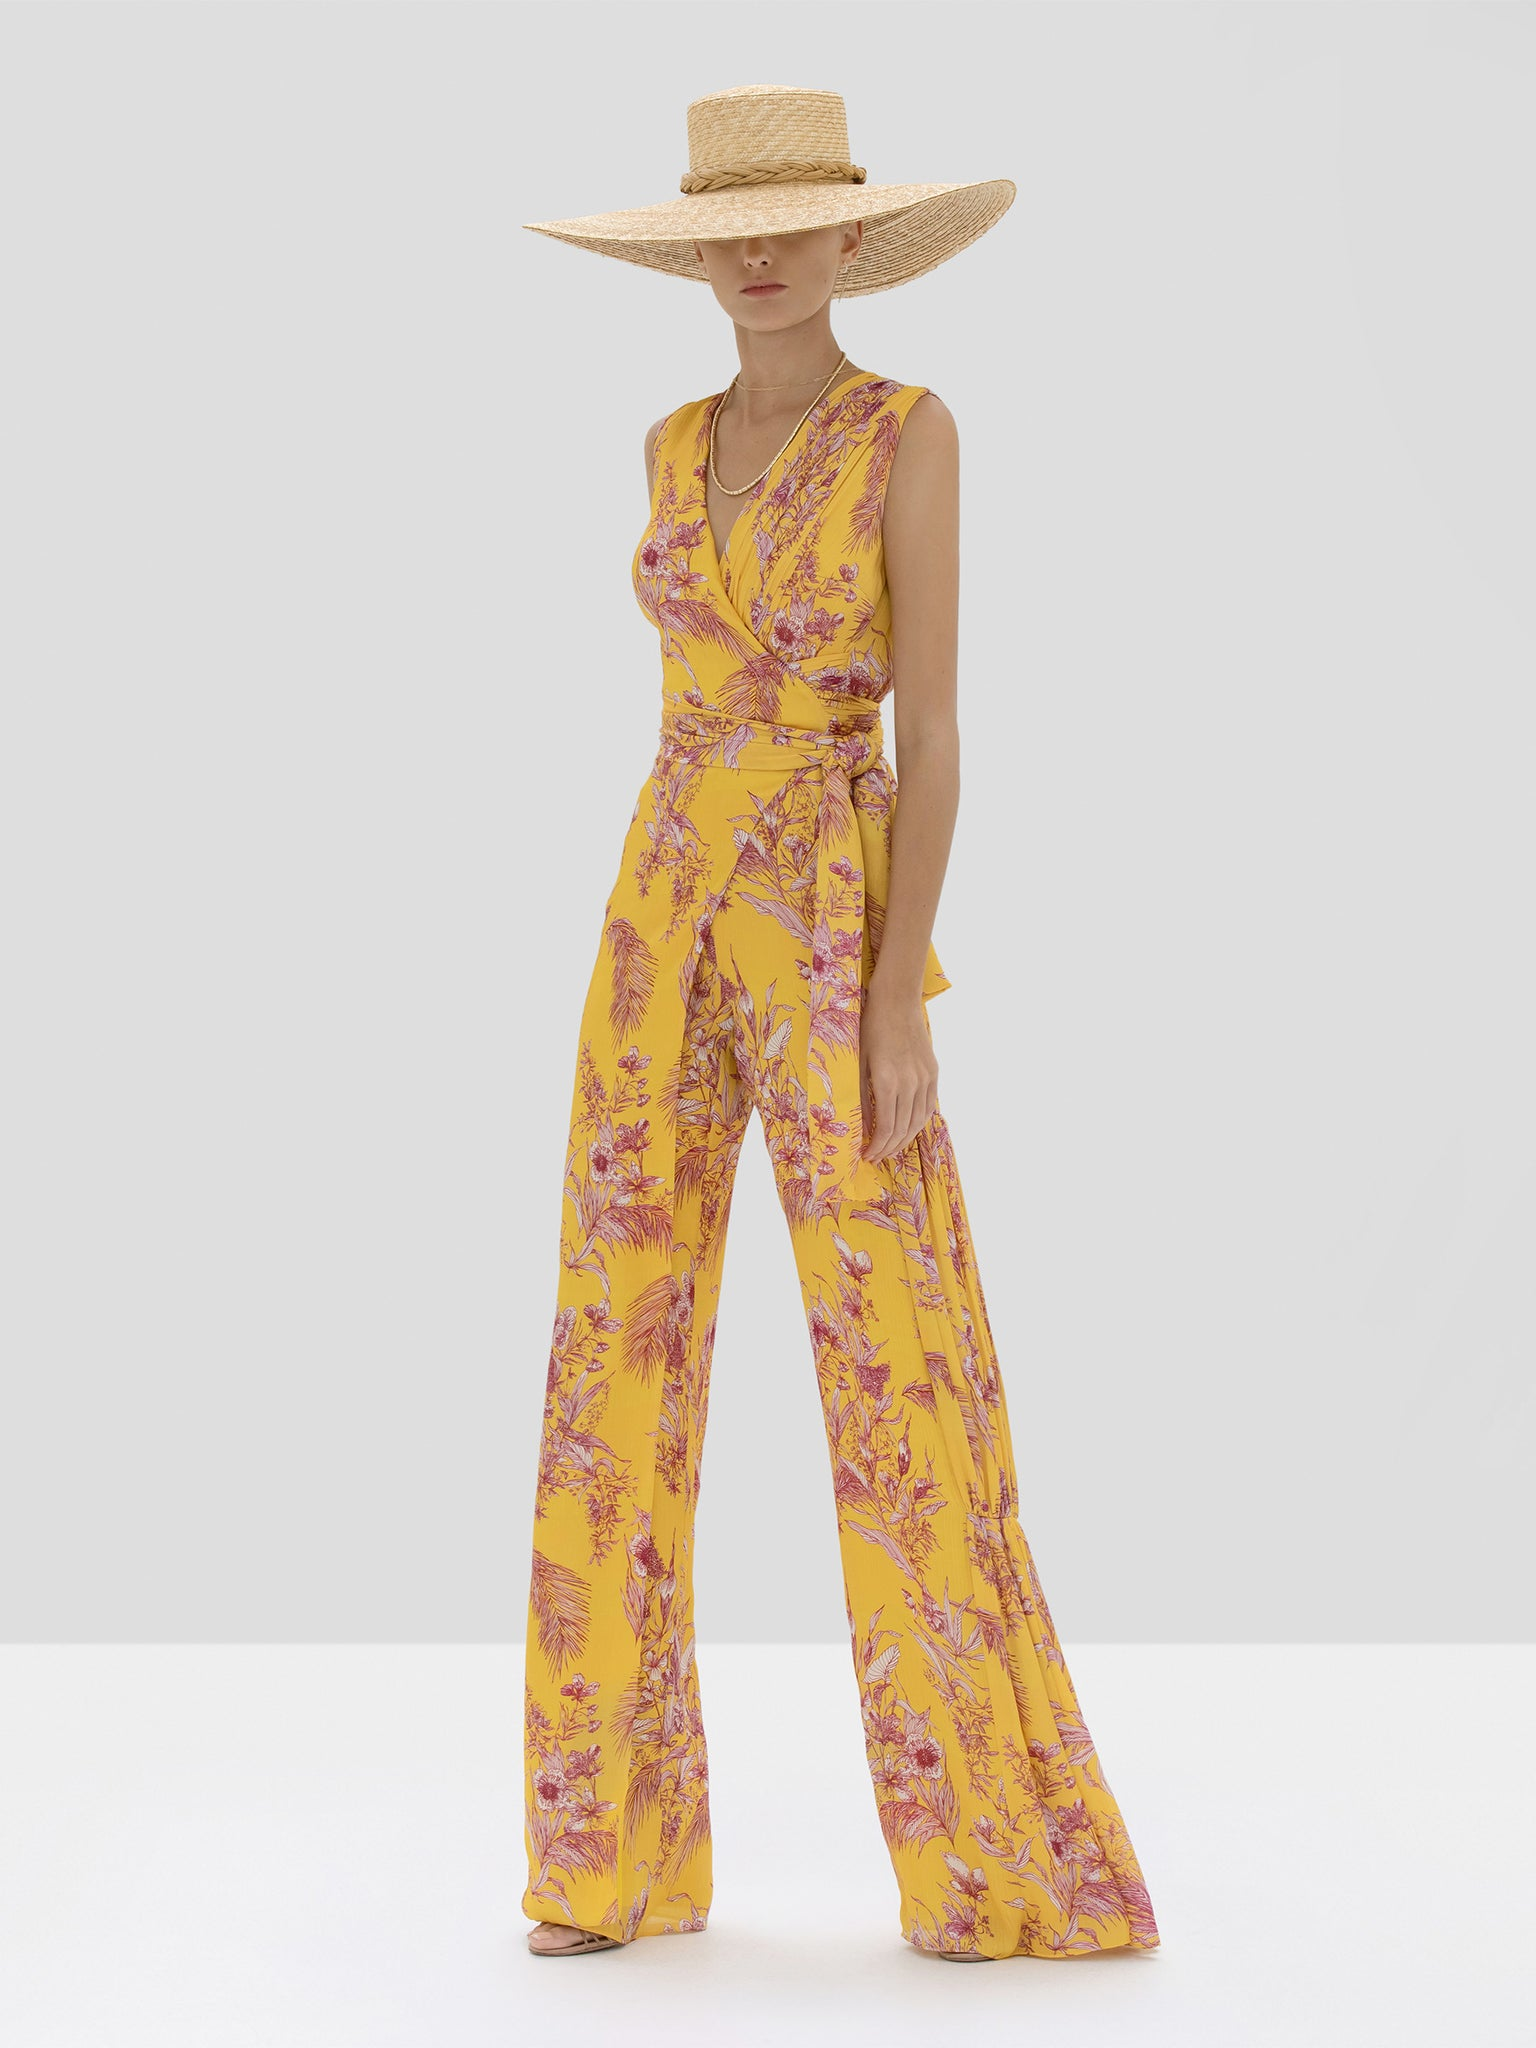 Alexis Kamiko Jumpsuit in Tuscan Palm from Spring Summer 2020 Collection